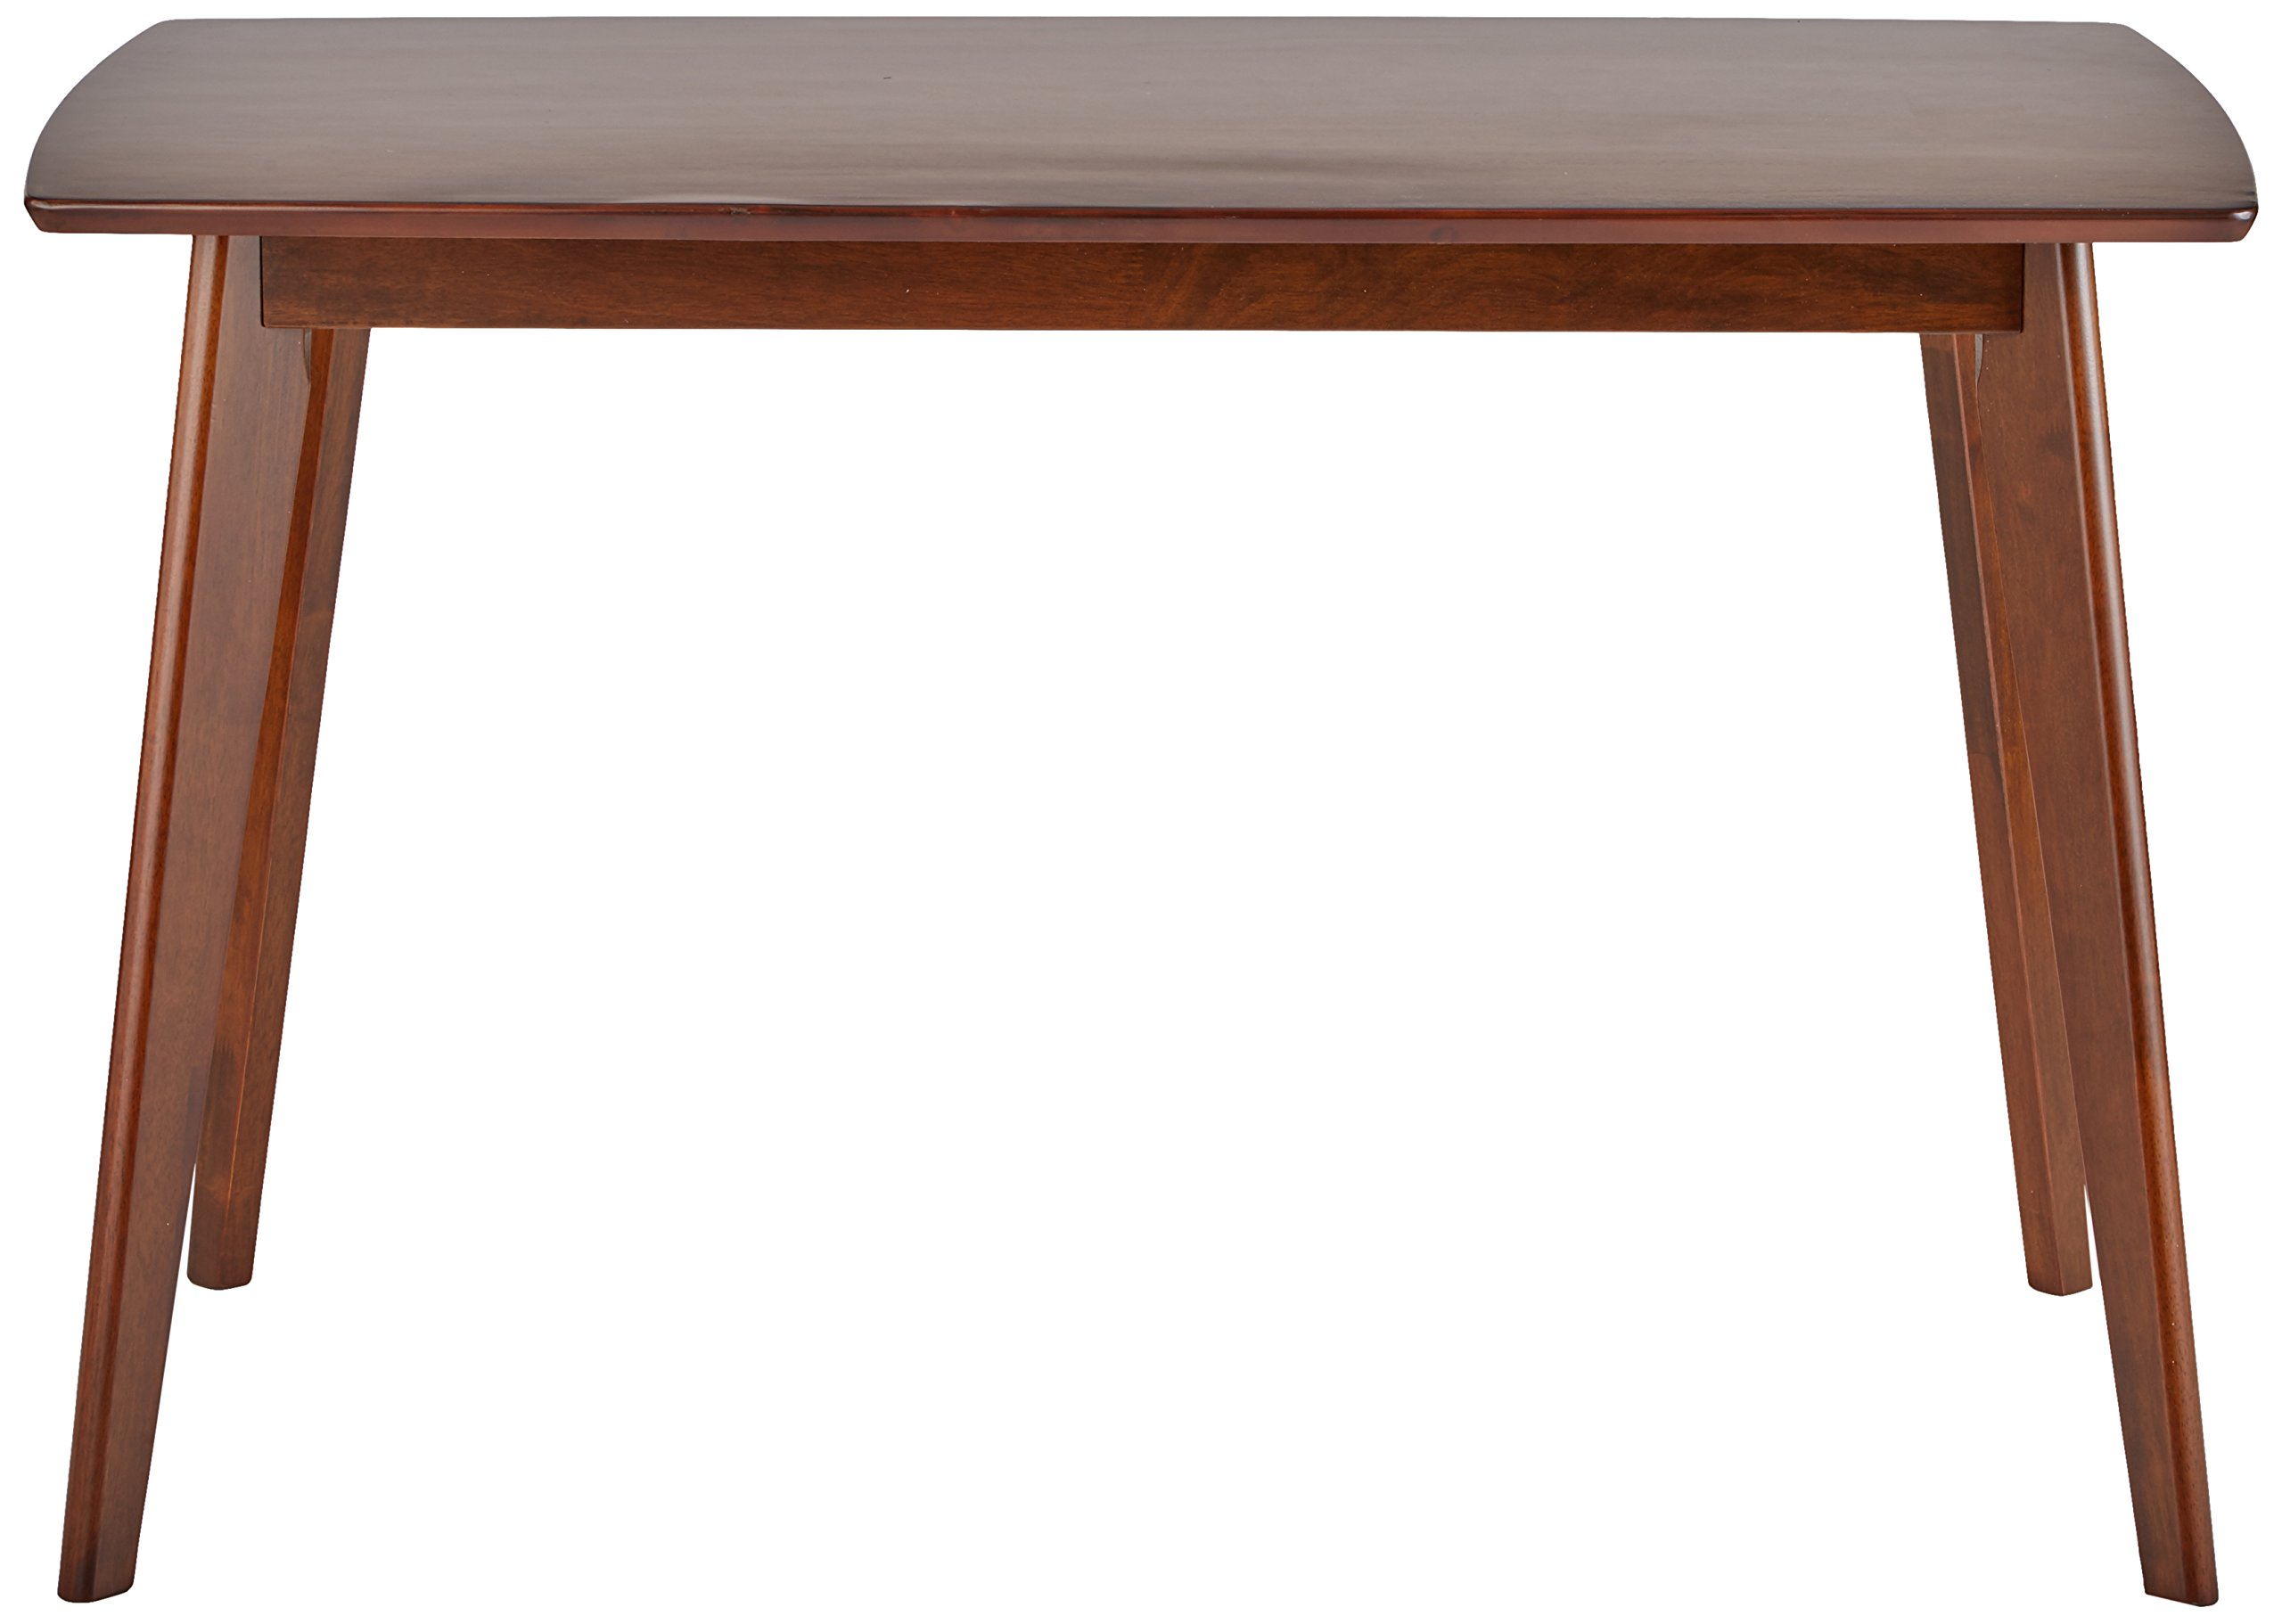 Coaster 103061 Home Furnishings Dining Table, Chestnut by Coaster Home Furnishings (Image #2)